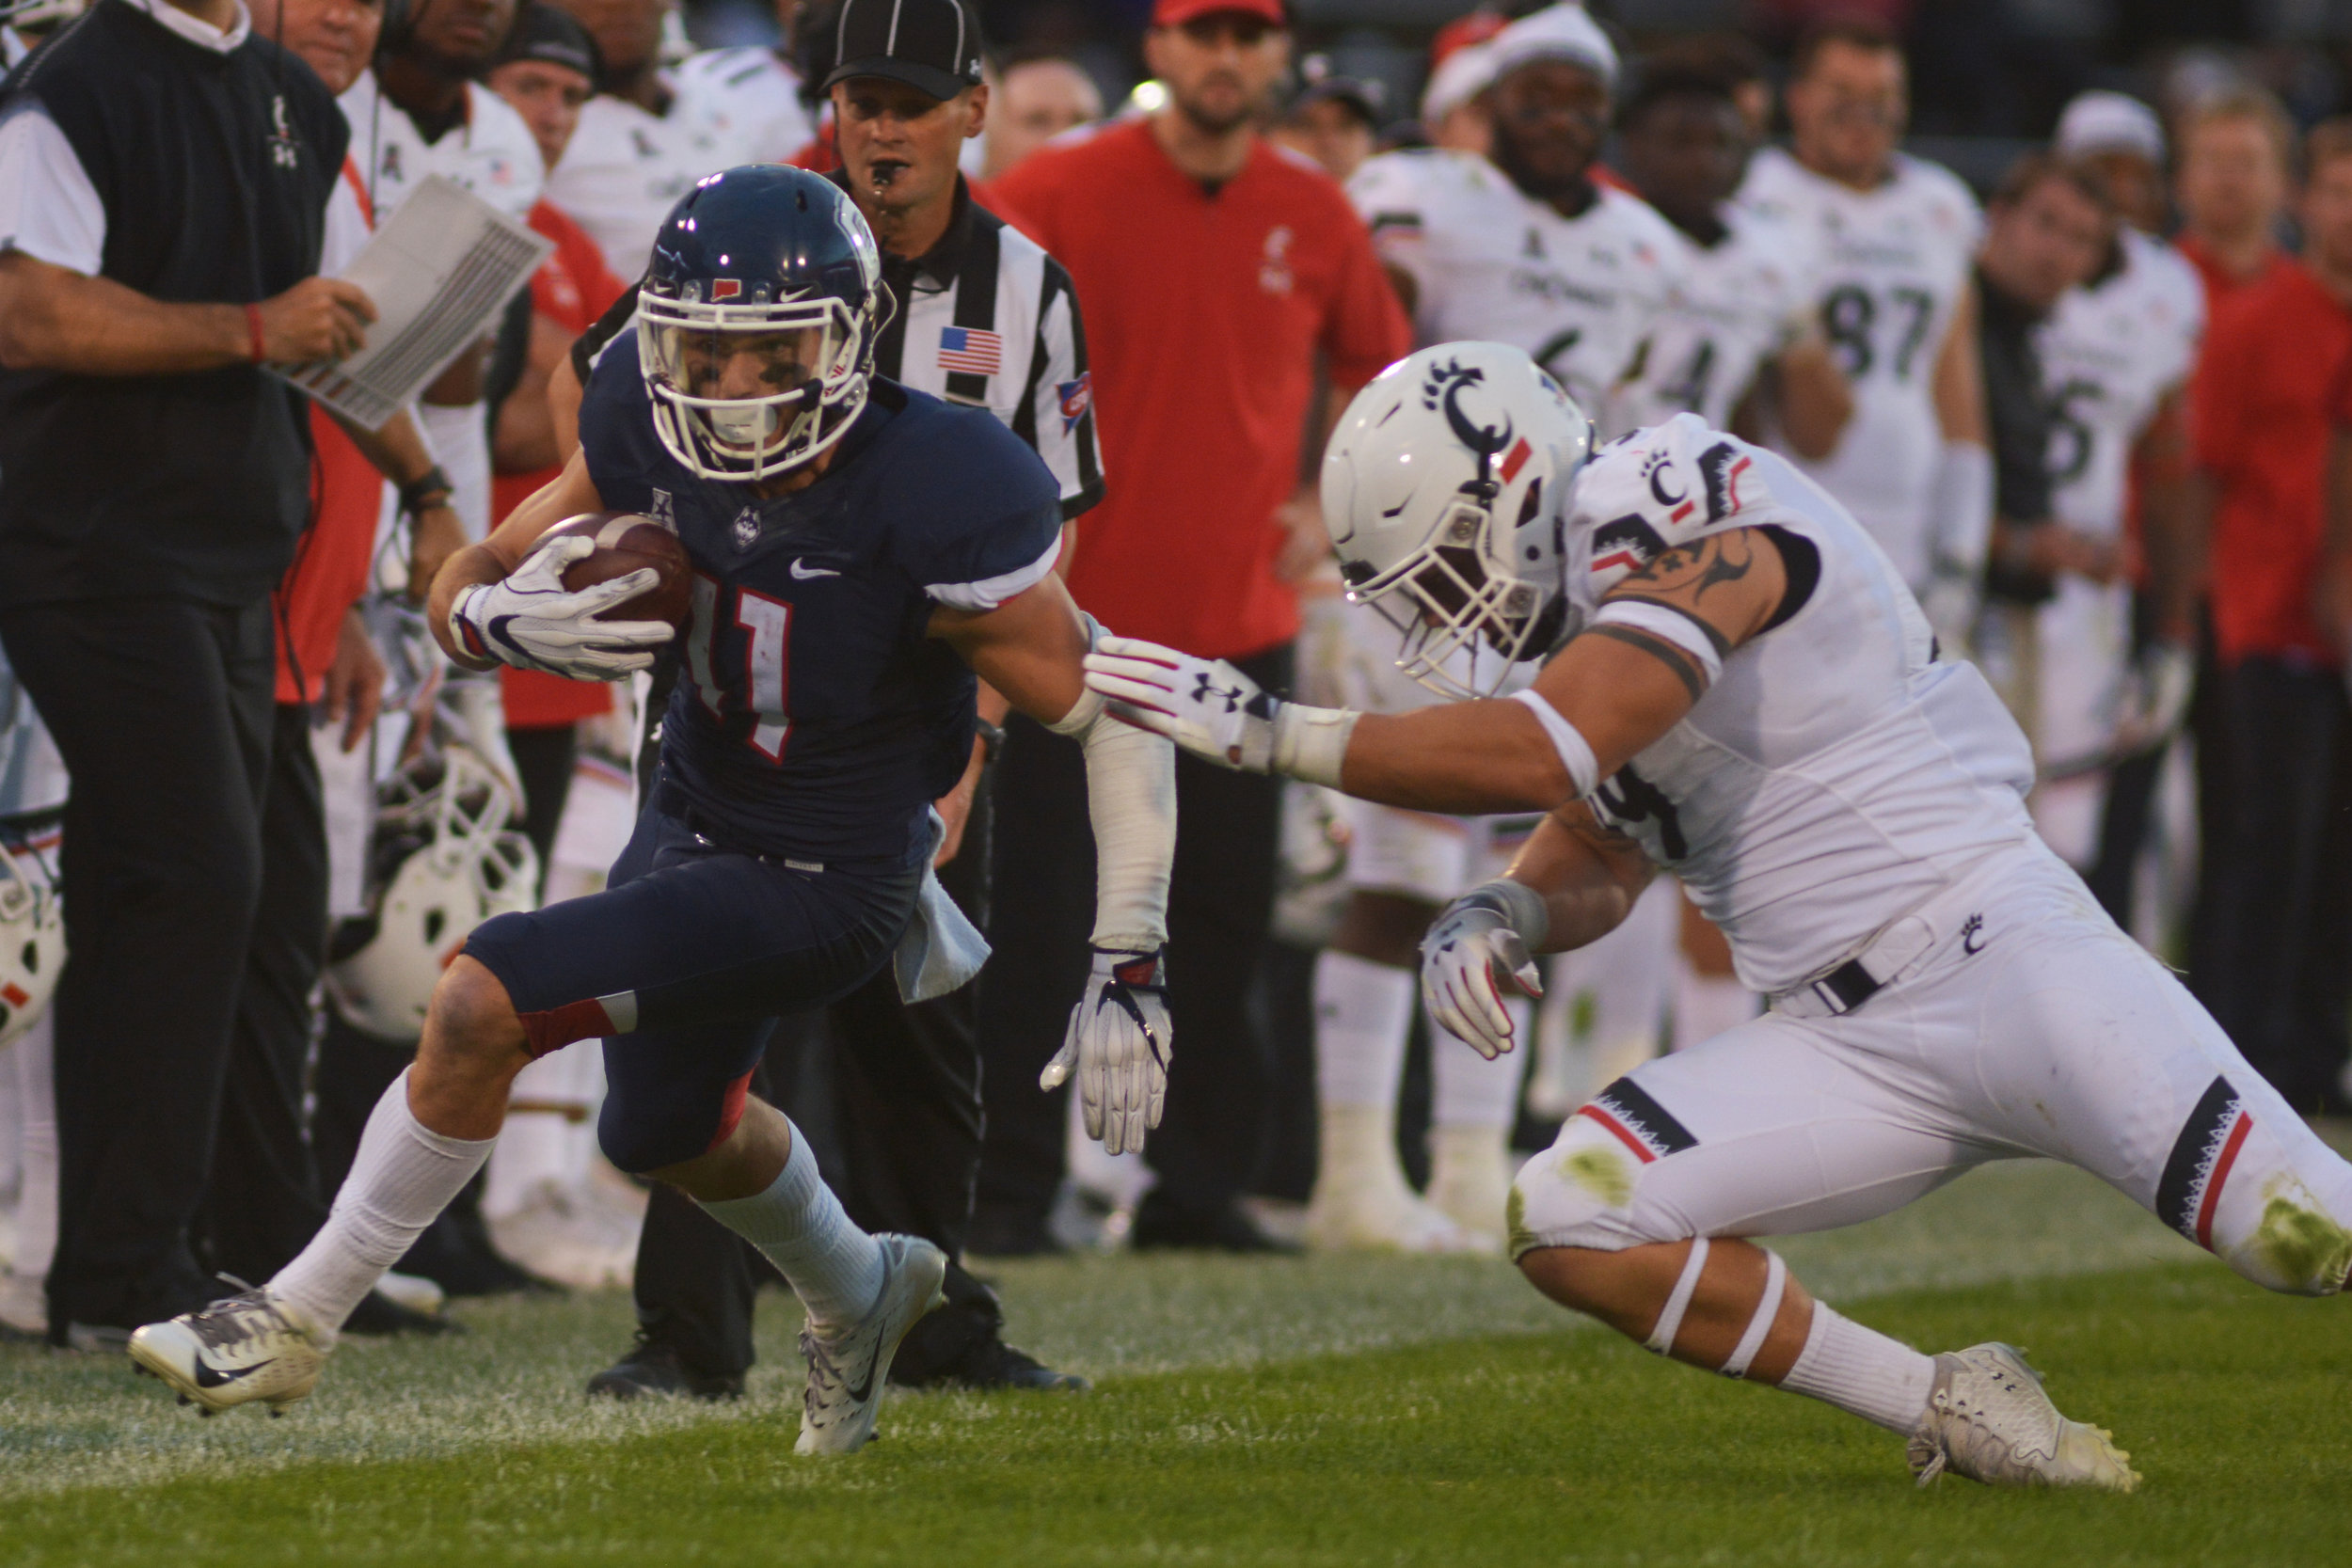 Kyle Buss avoids a Cincinnati opponent during a game on Saturday, Sept. 29 at Rentschler Field. (Nicholas Hampton, Associate Photo Editor/The Daily Campus)